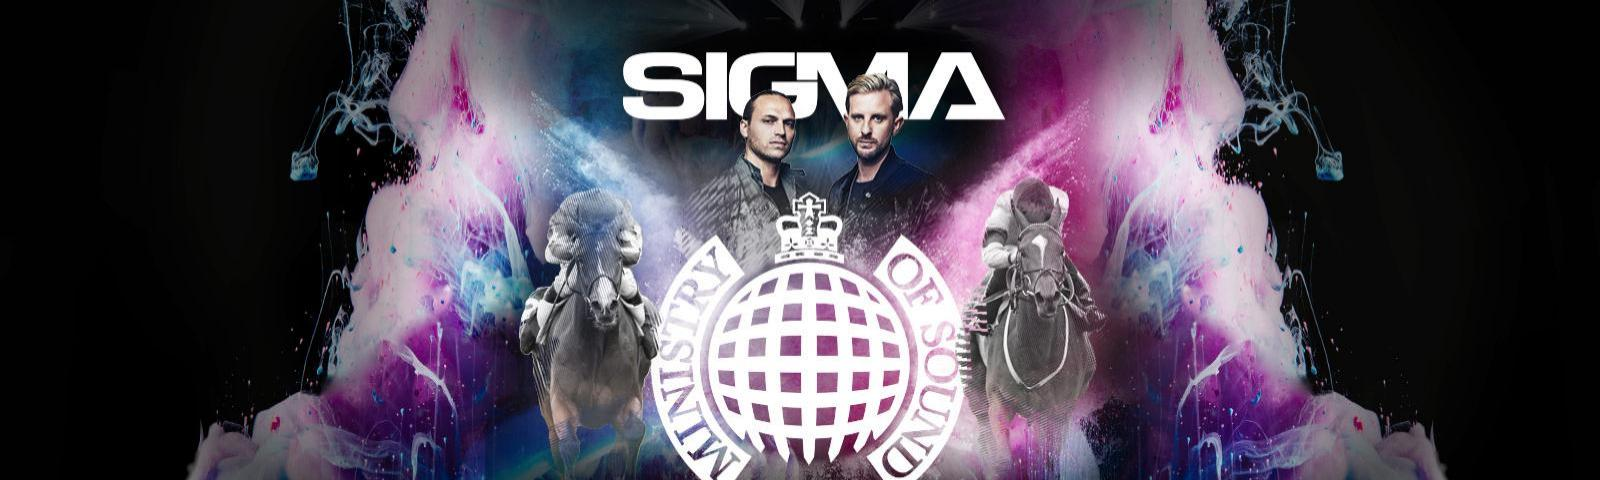 Sigma DJ set live after racing at Royal Windsor Racecourse gentleman's day on 27th June.